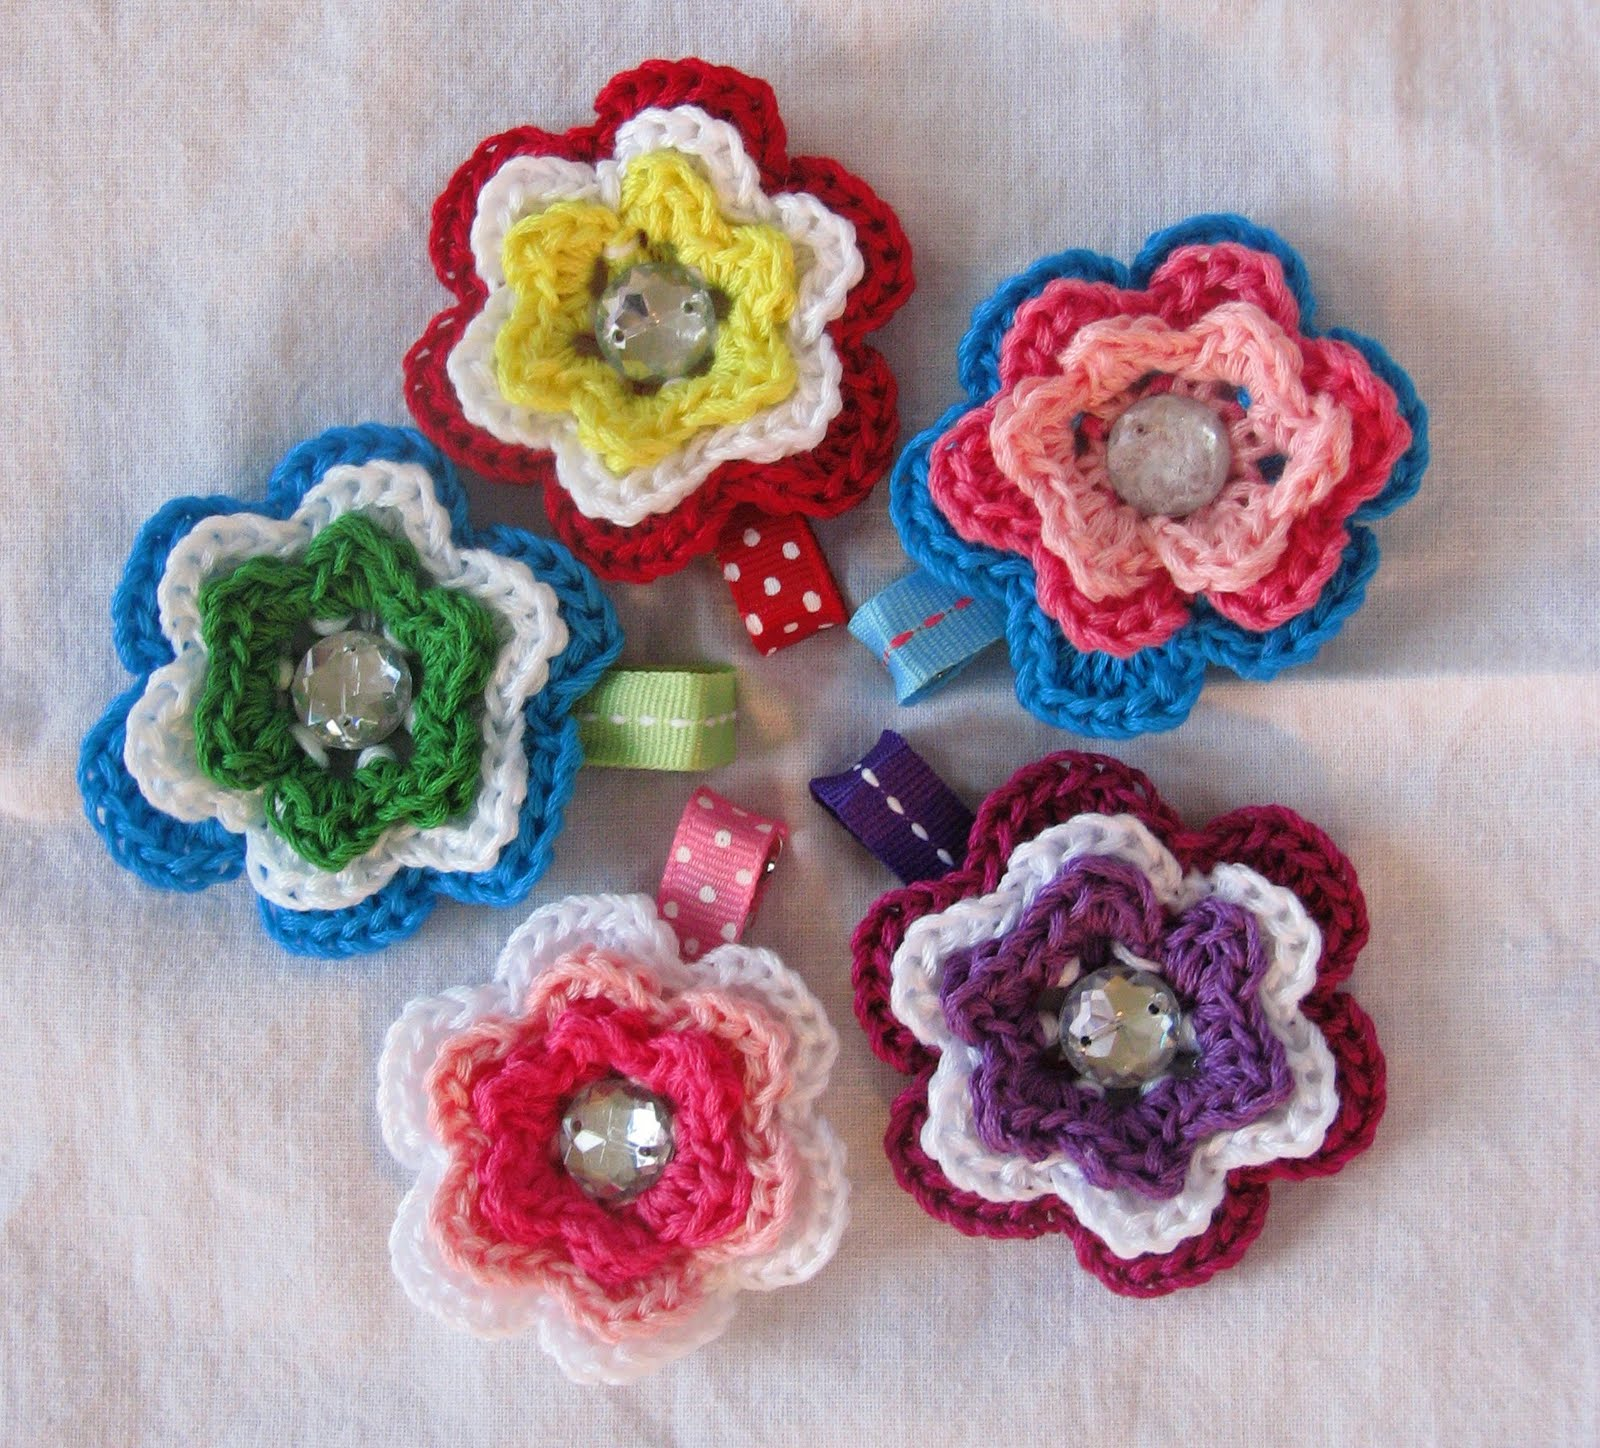 Crochet Hair Clips : Stitches By Stacy: Crochet Flower Hair Clips